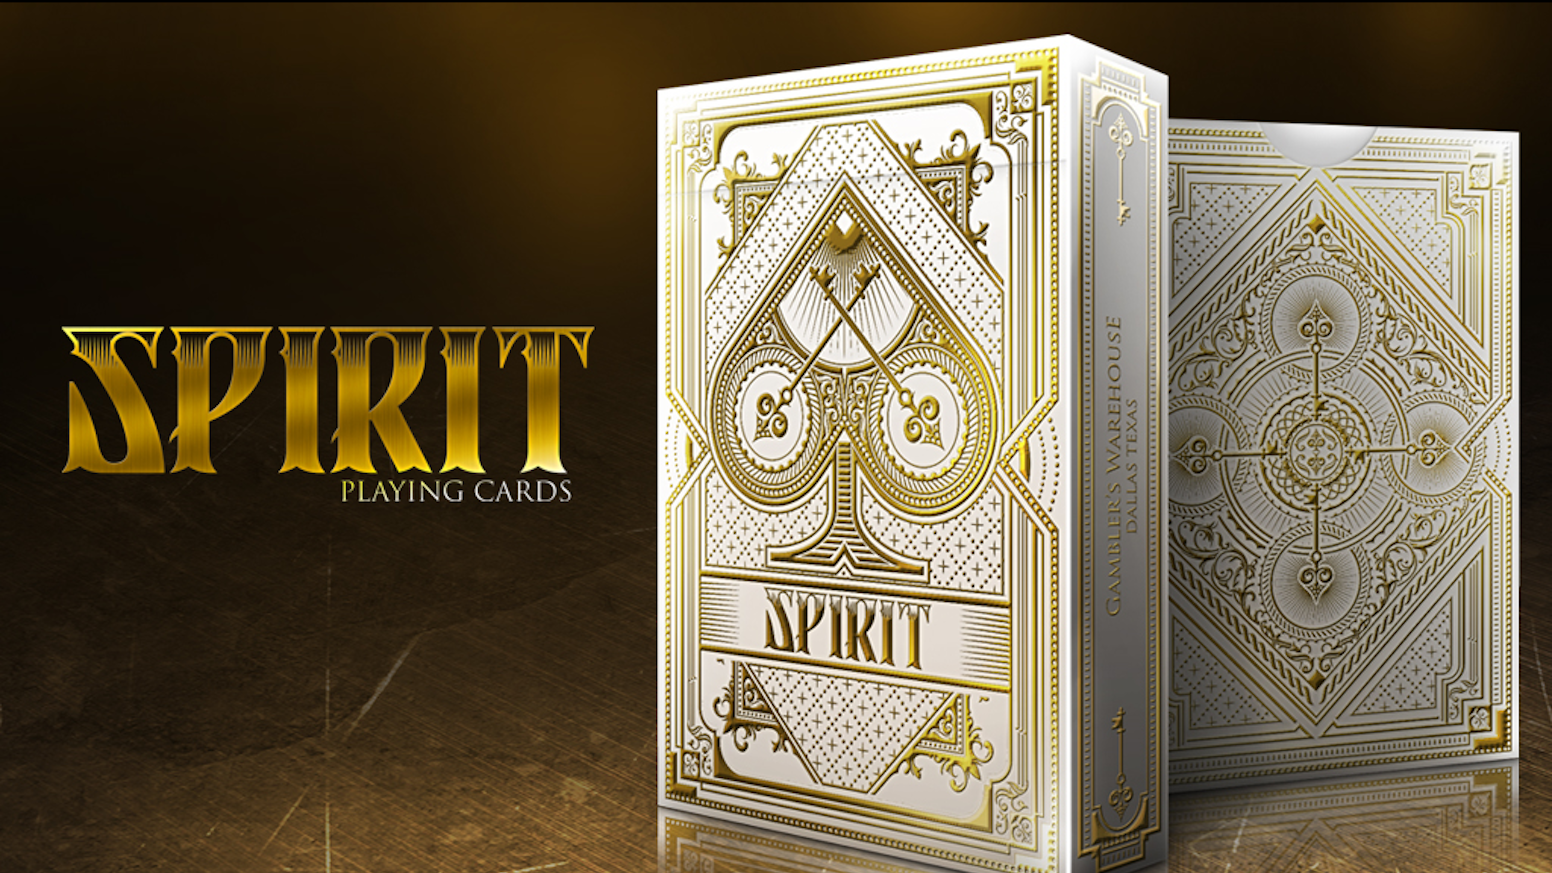 Elegant SPIRIT Custom Playing Cards from Gambler's Warehouse printed by USPCC. Including a Bicycle Limited Edition Run.